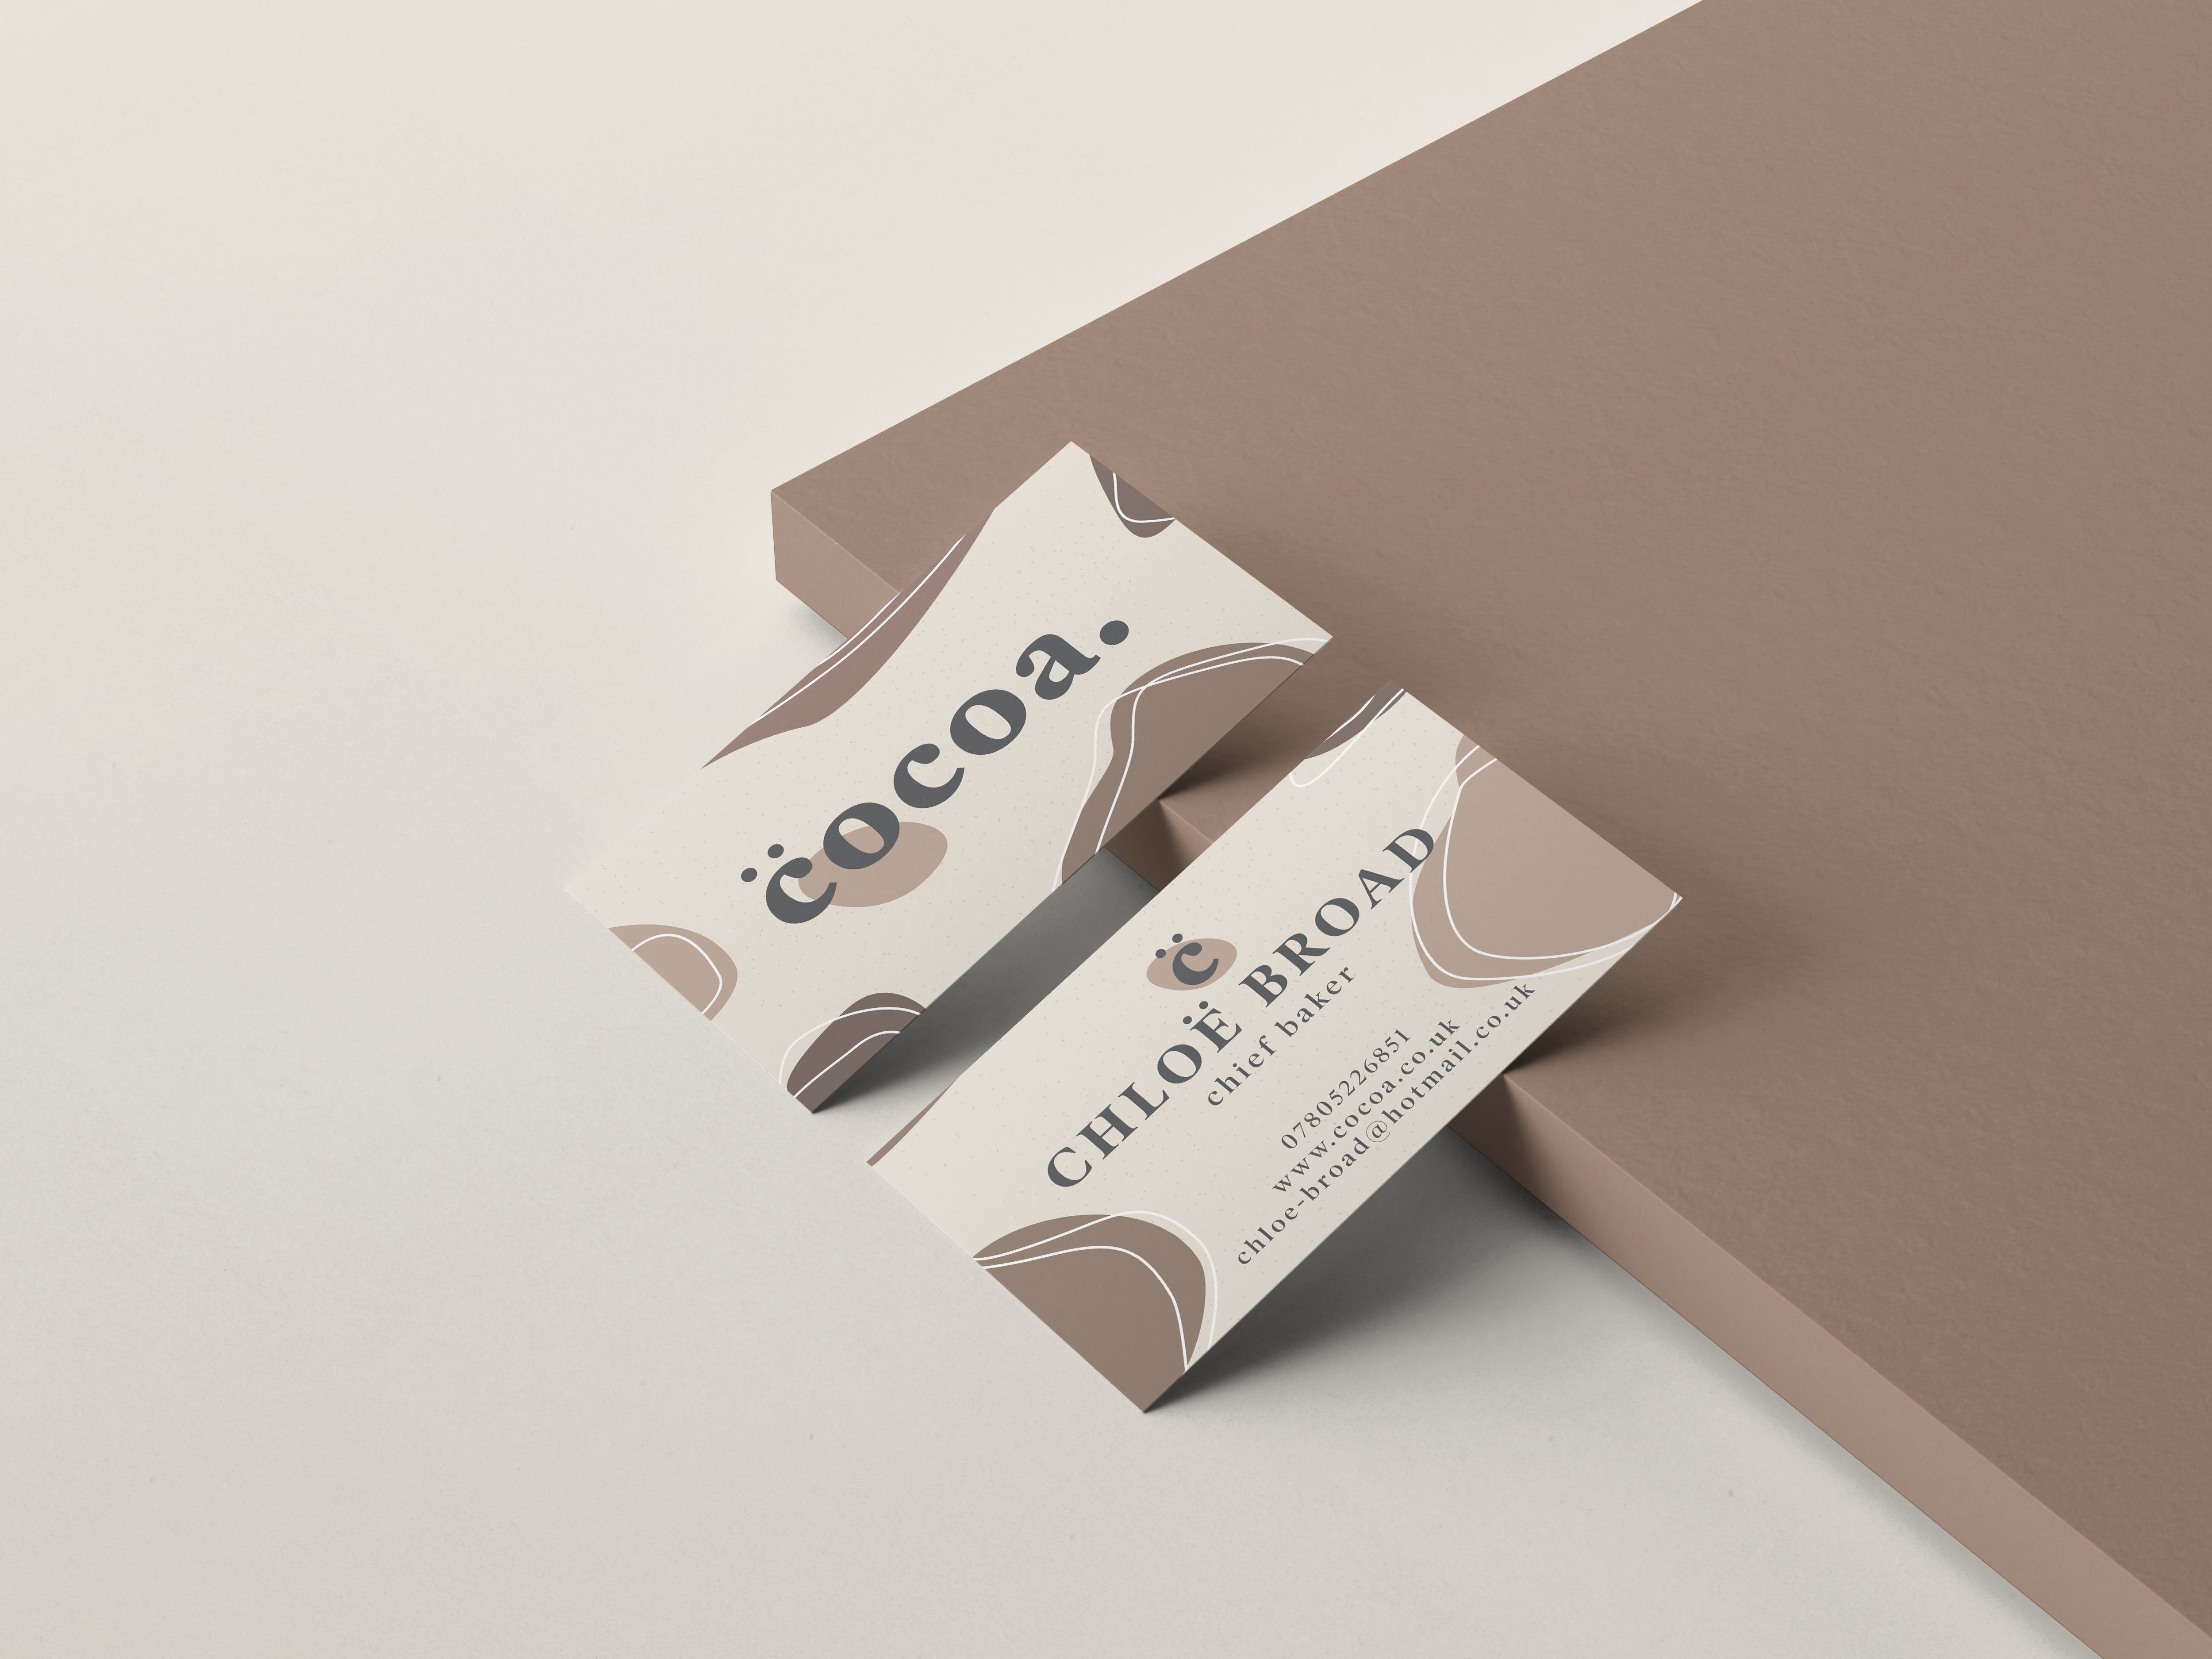 A business card design for a company called cocoa.